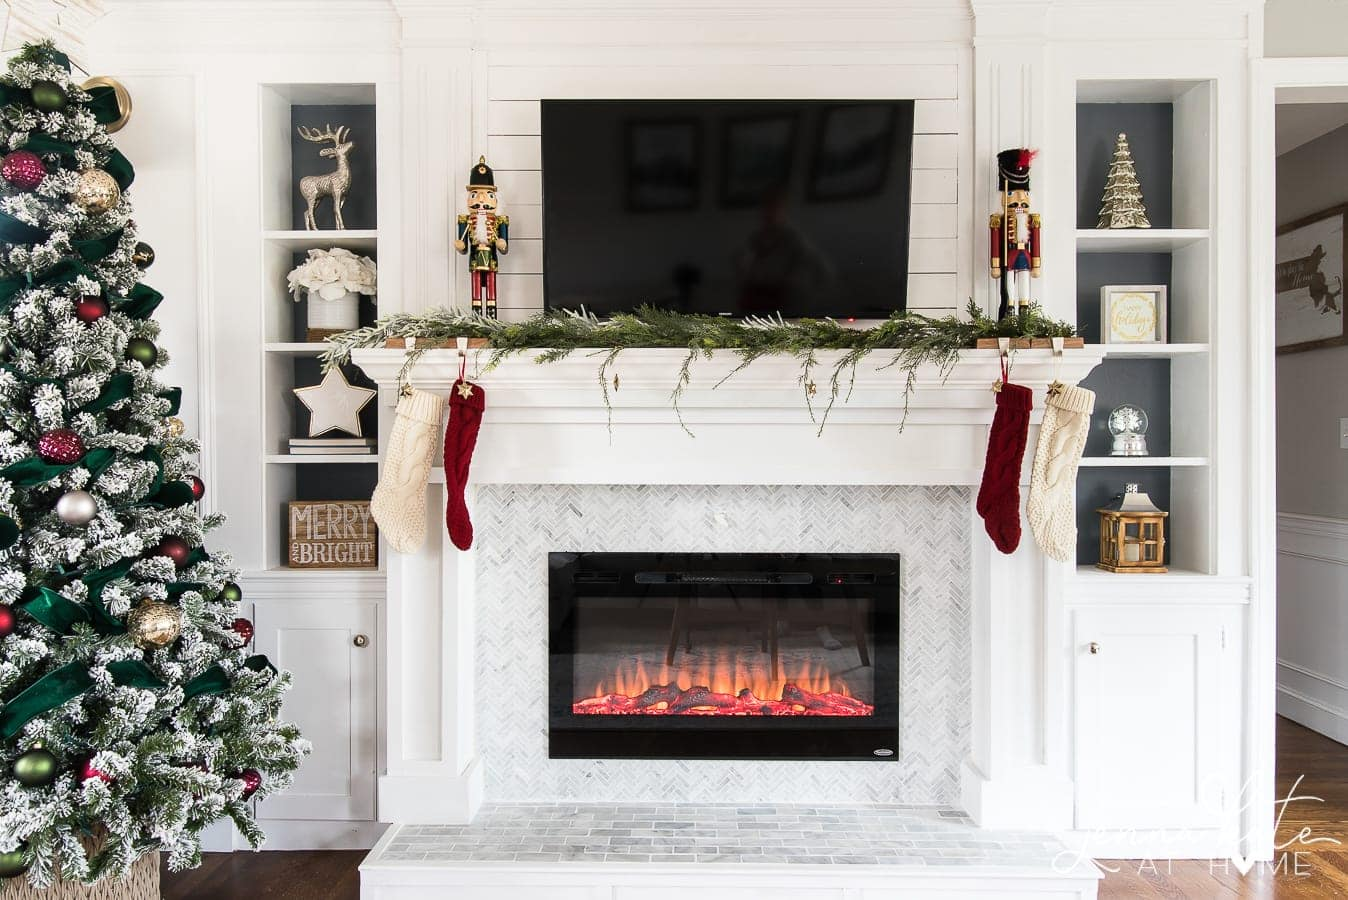 How to build a fireplace mantel from scratch